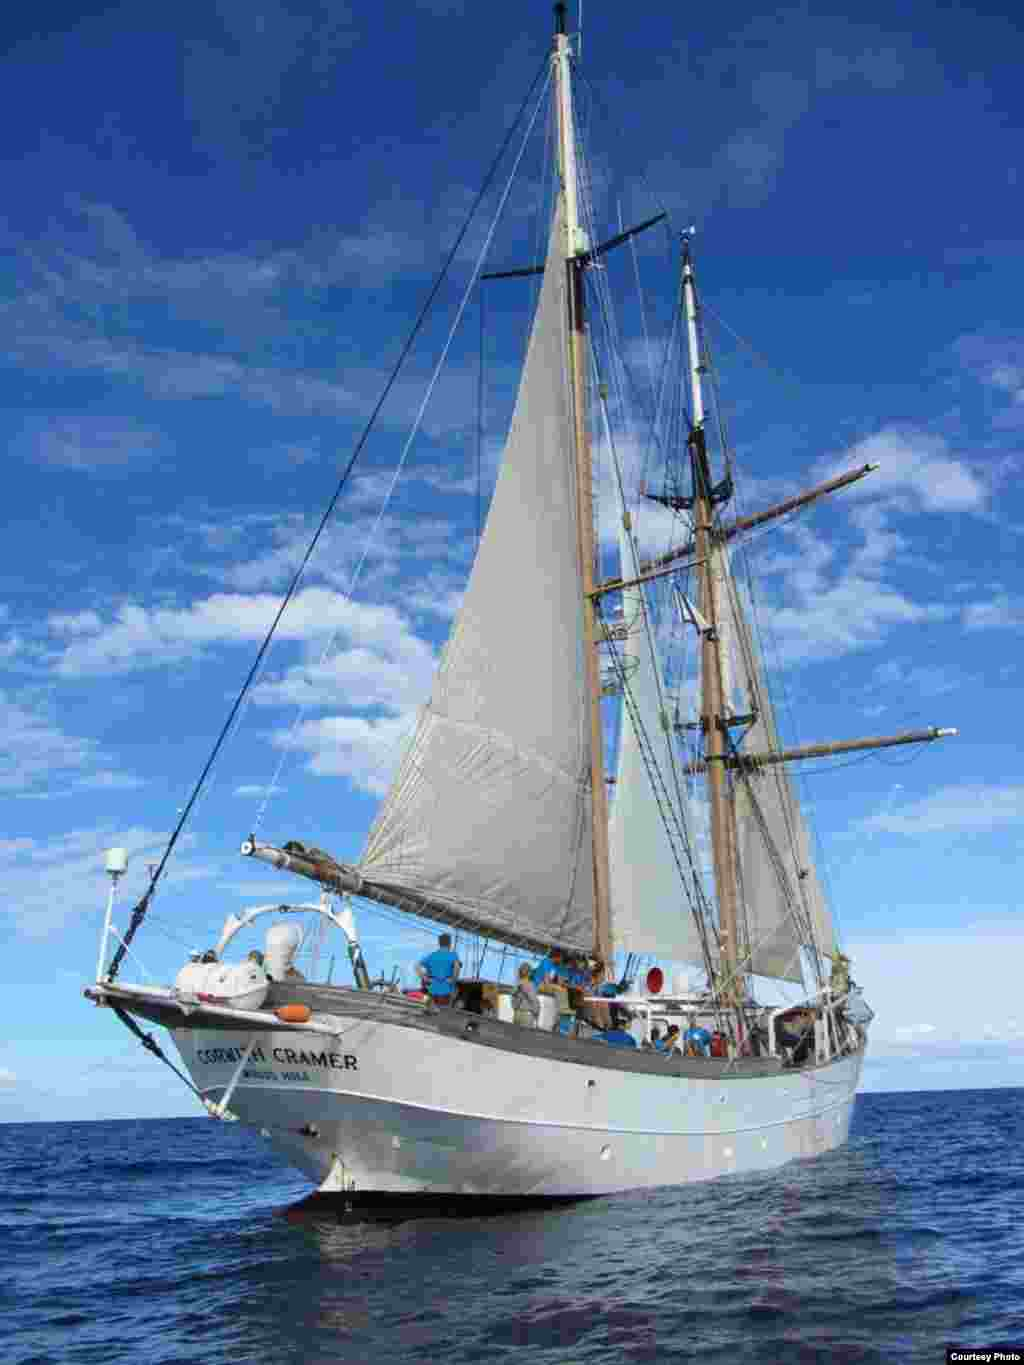 Sea Education Association (SEA) sailing research ship Corwith Cramer under sail. (Credit: E. Zettler, SEA Education Association)